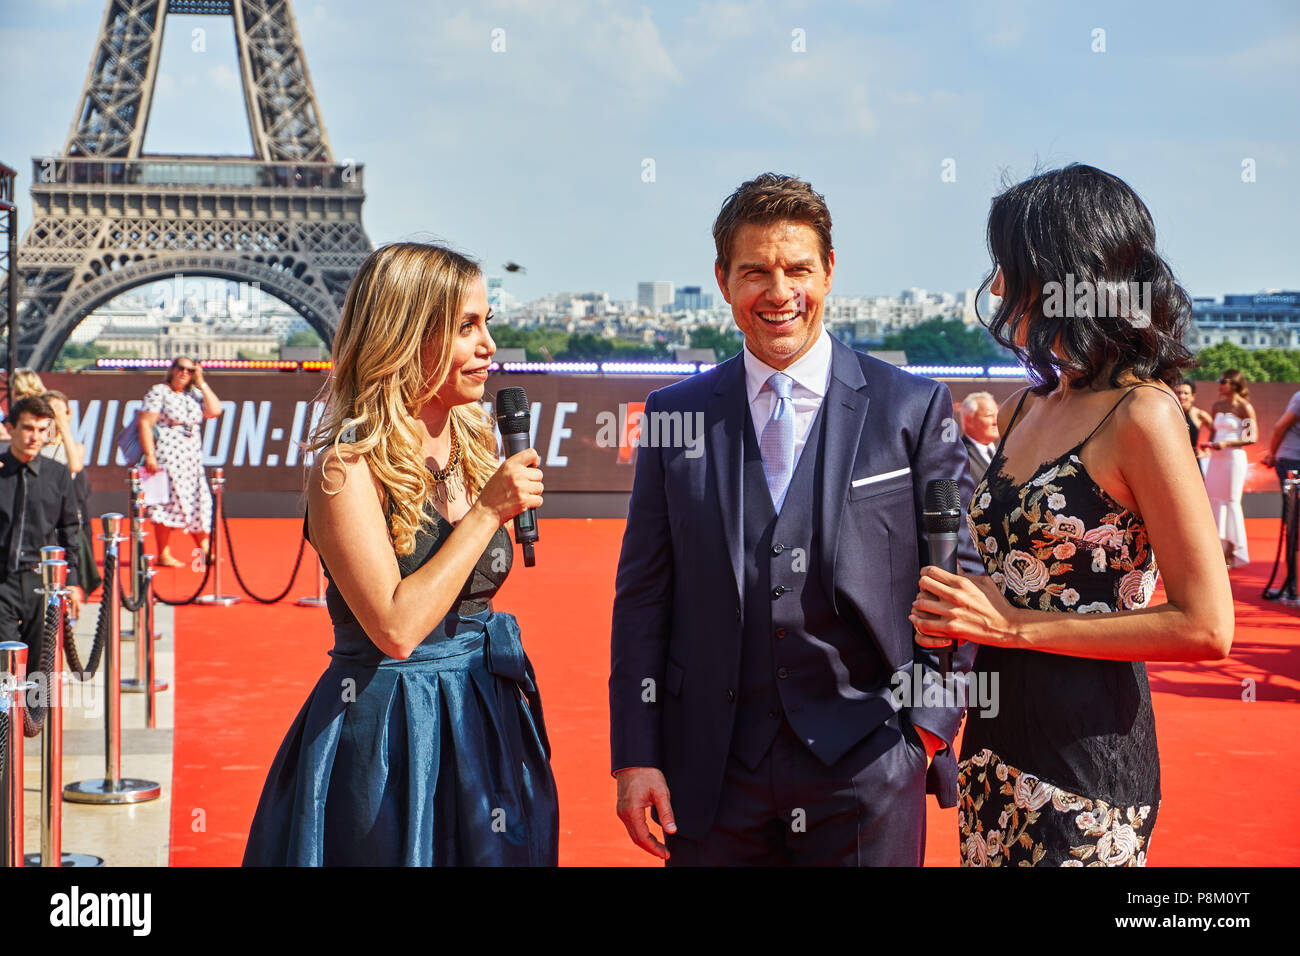 Paris, France. 12 July 2018. Tom Cruise at the Mission: Impossible - Fallout World Premier red carpet. Credit: Calvin Tan/Alamy Live News Stock Photo